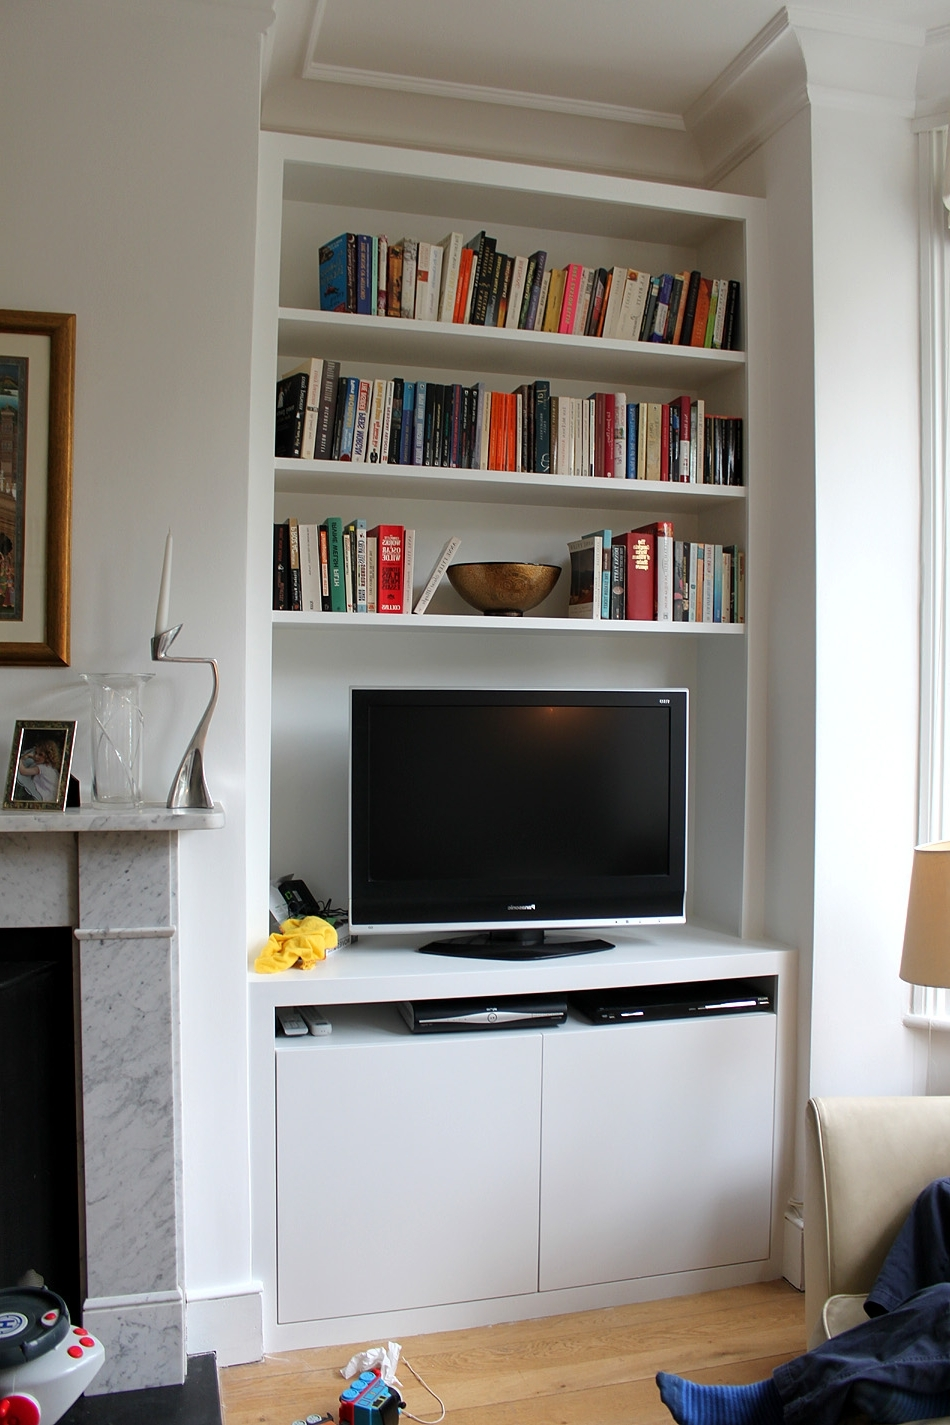 Bookcases Tv In Popular Fitted Wardrobes, Bookcases, Shelving, Floating Shelves, London (View 3 of 15)